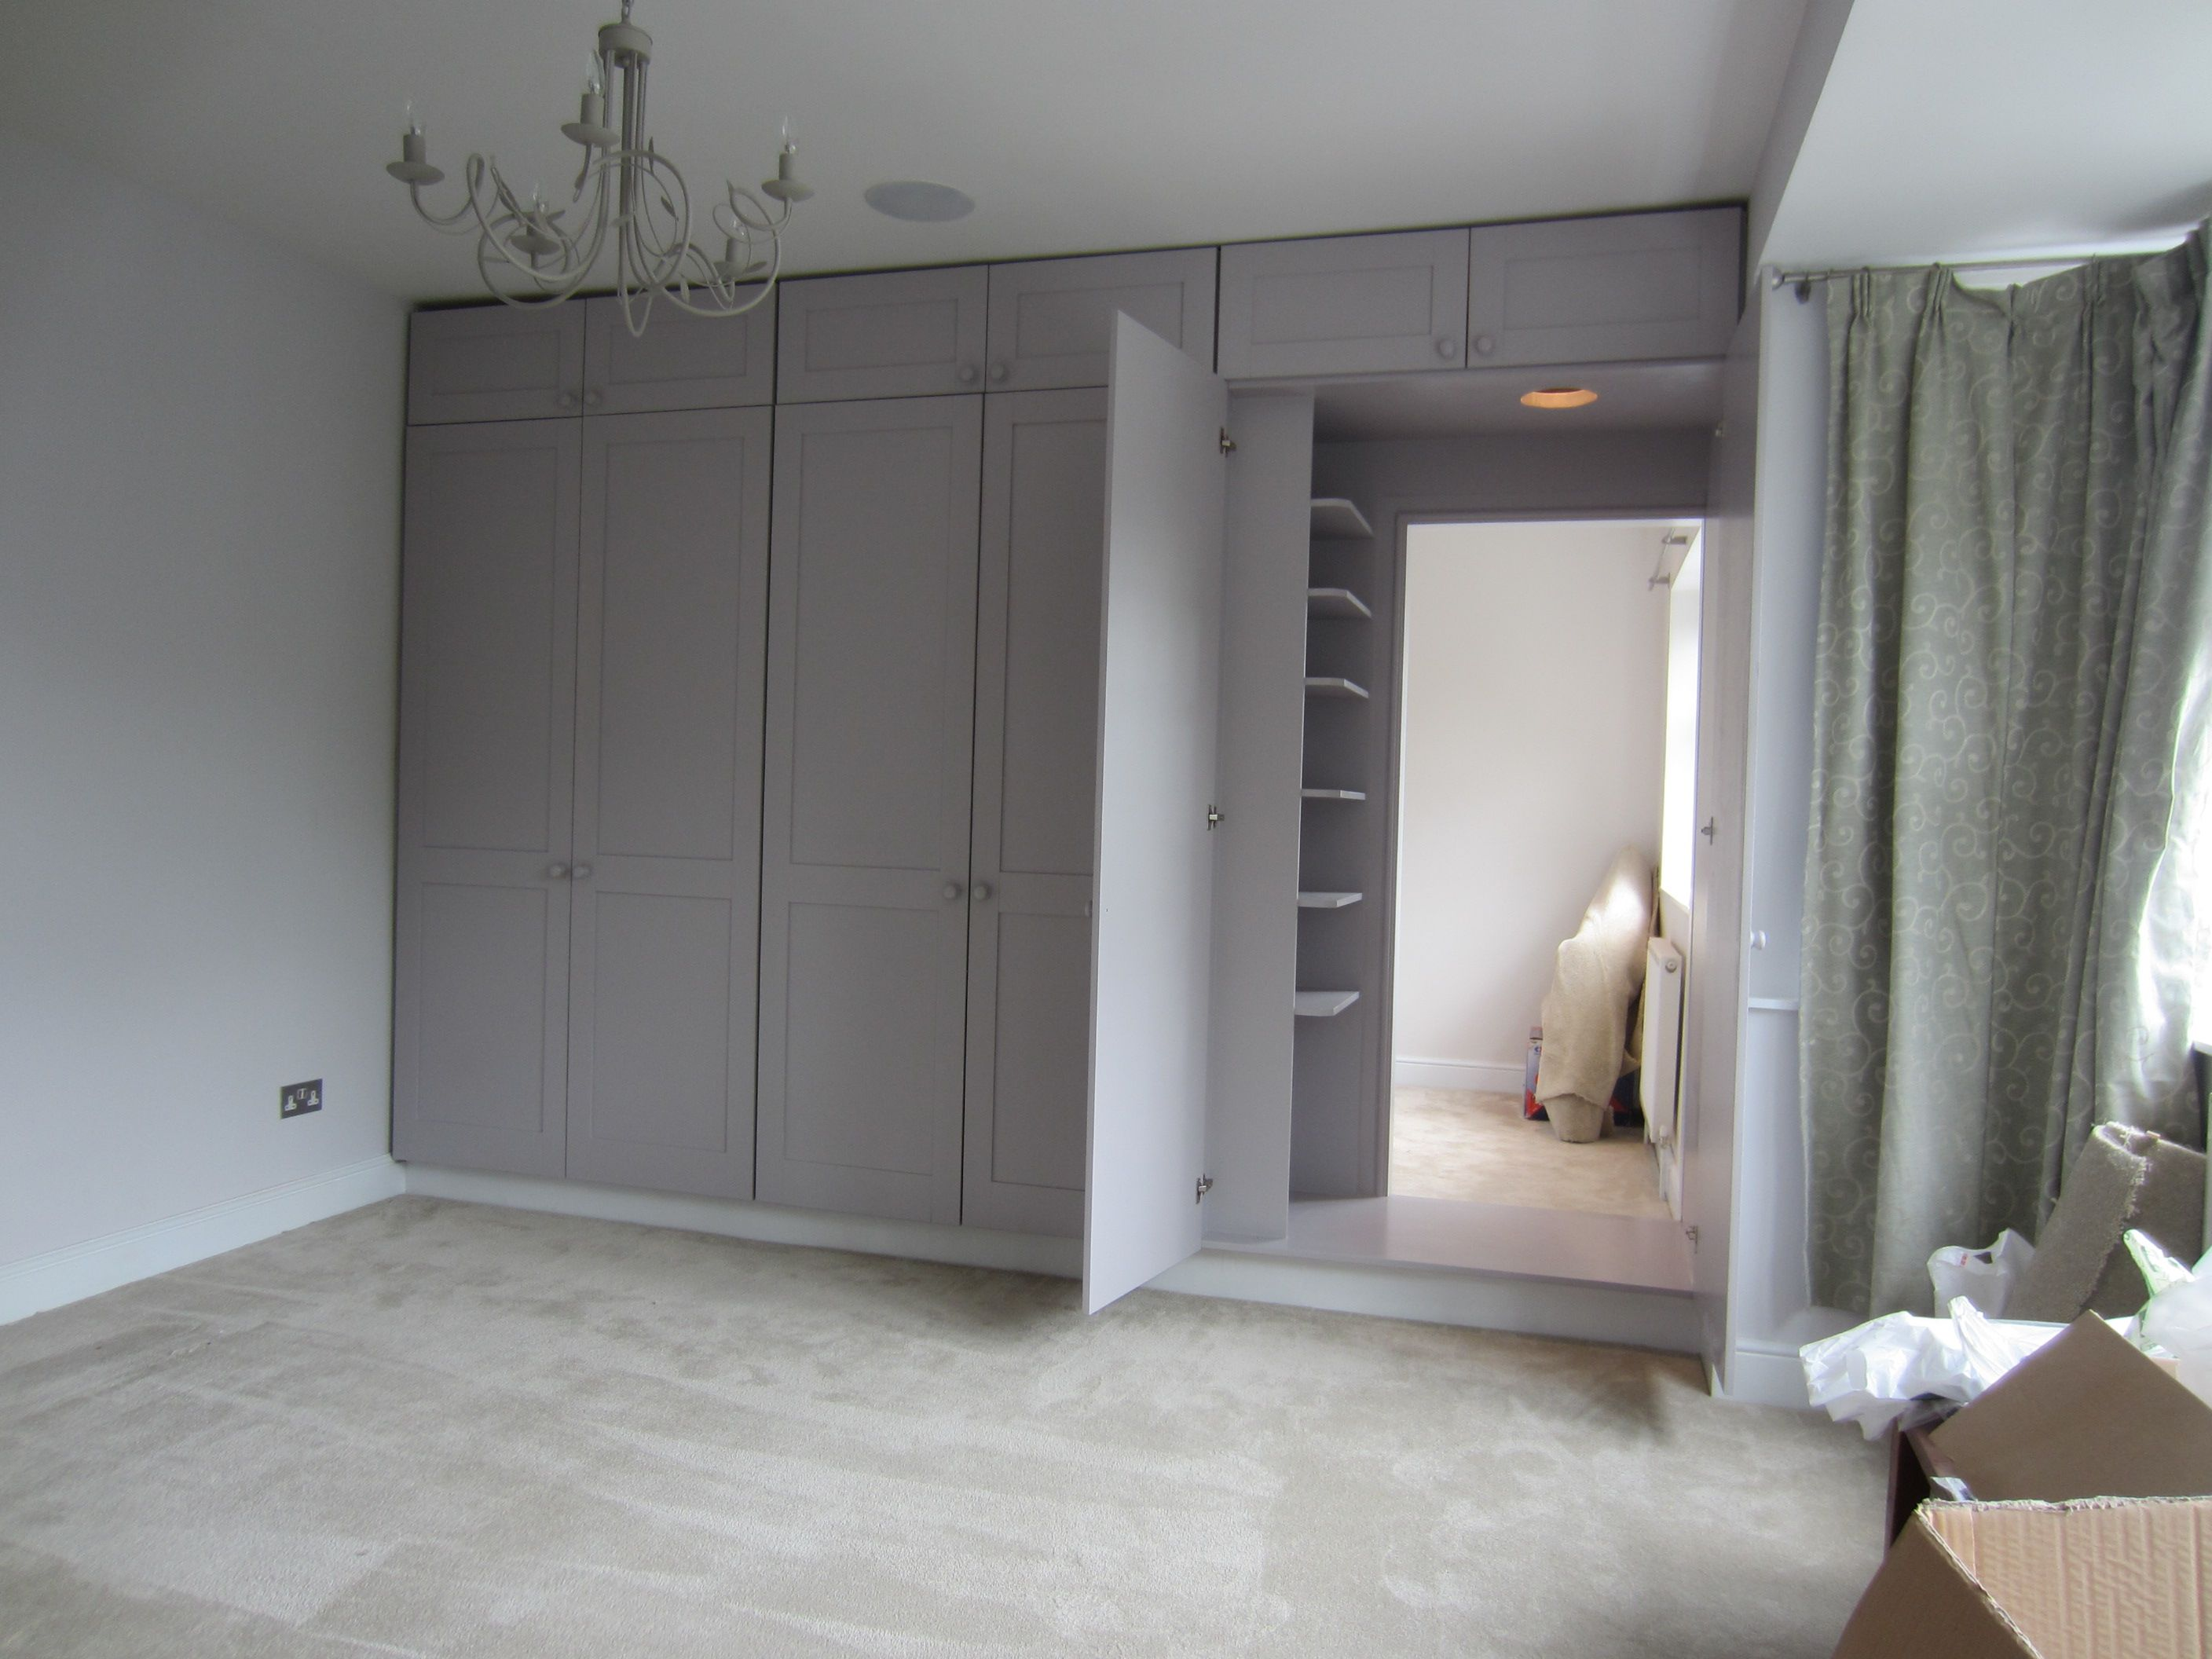 Wardrobe doors reveal hidden dressing room containing for Bedroom entrance door designs